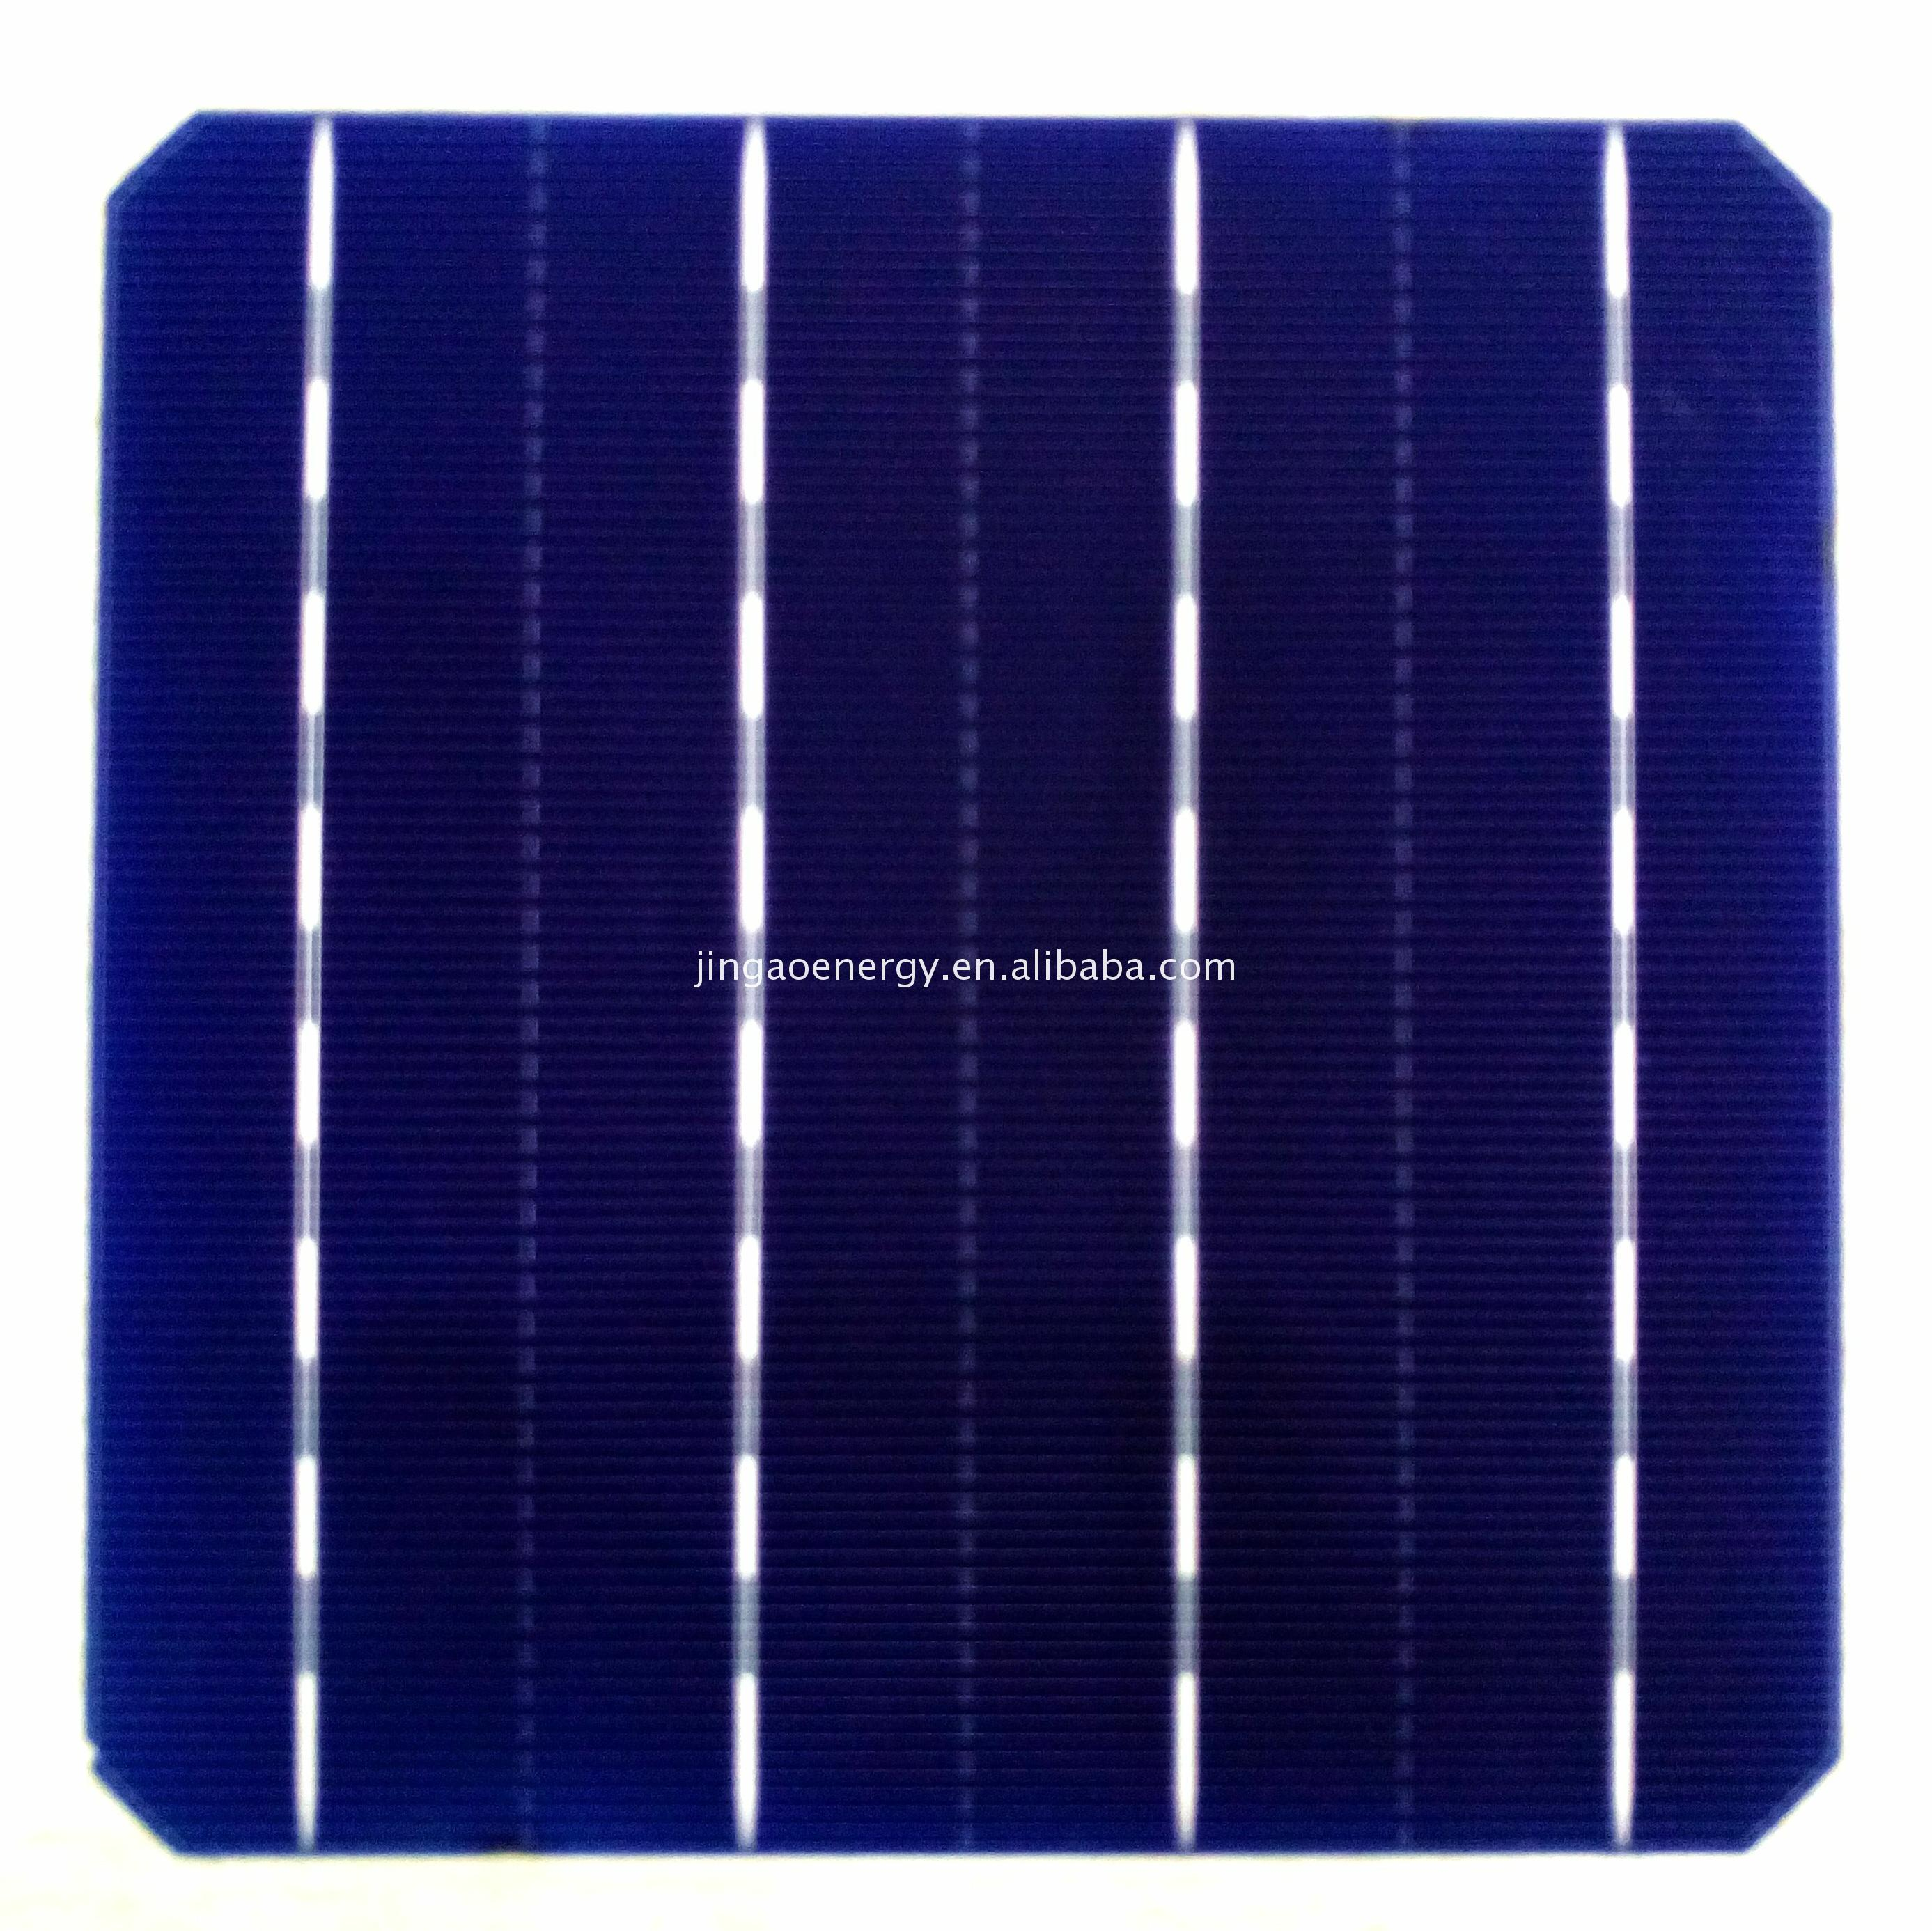 Hot Sale Professional Lower Price 50 watt monocrystalline solar panel made in China